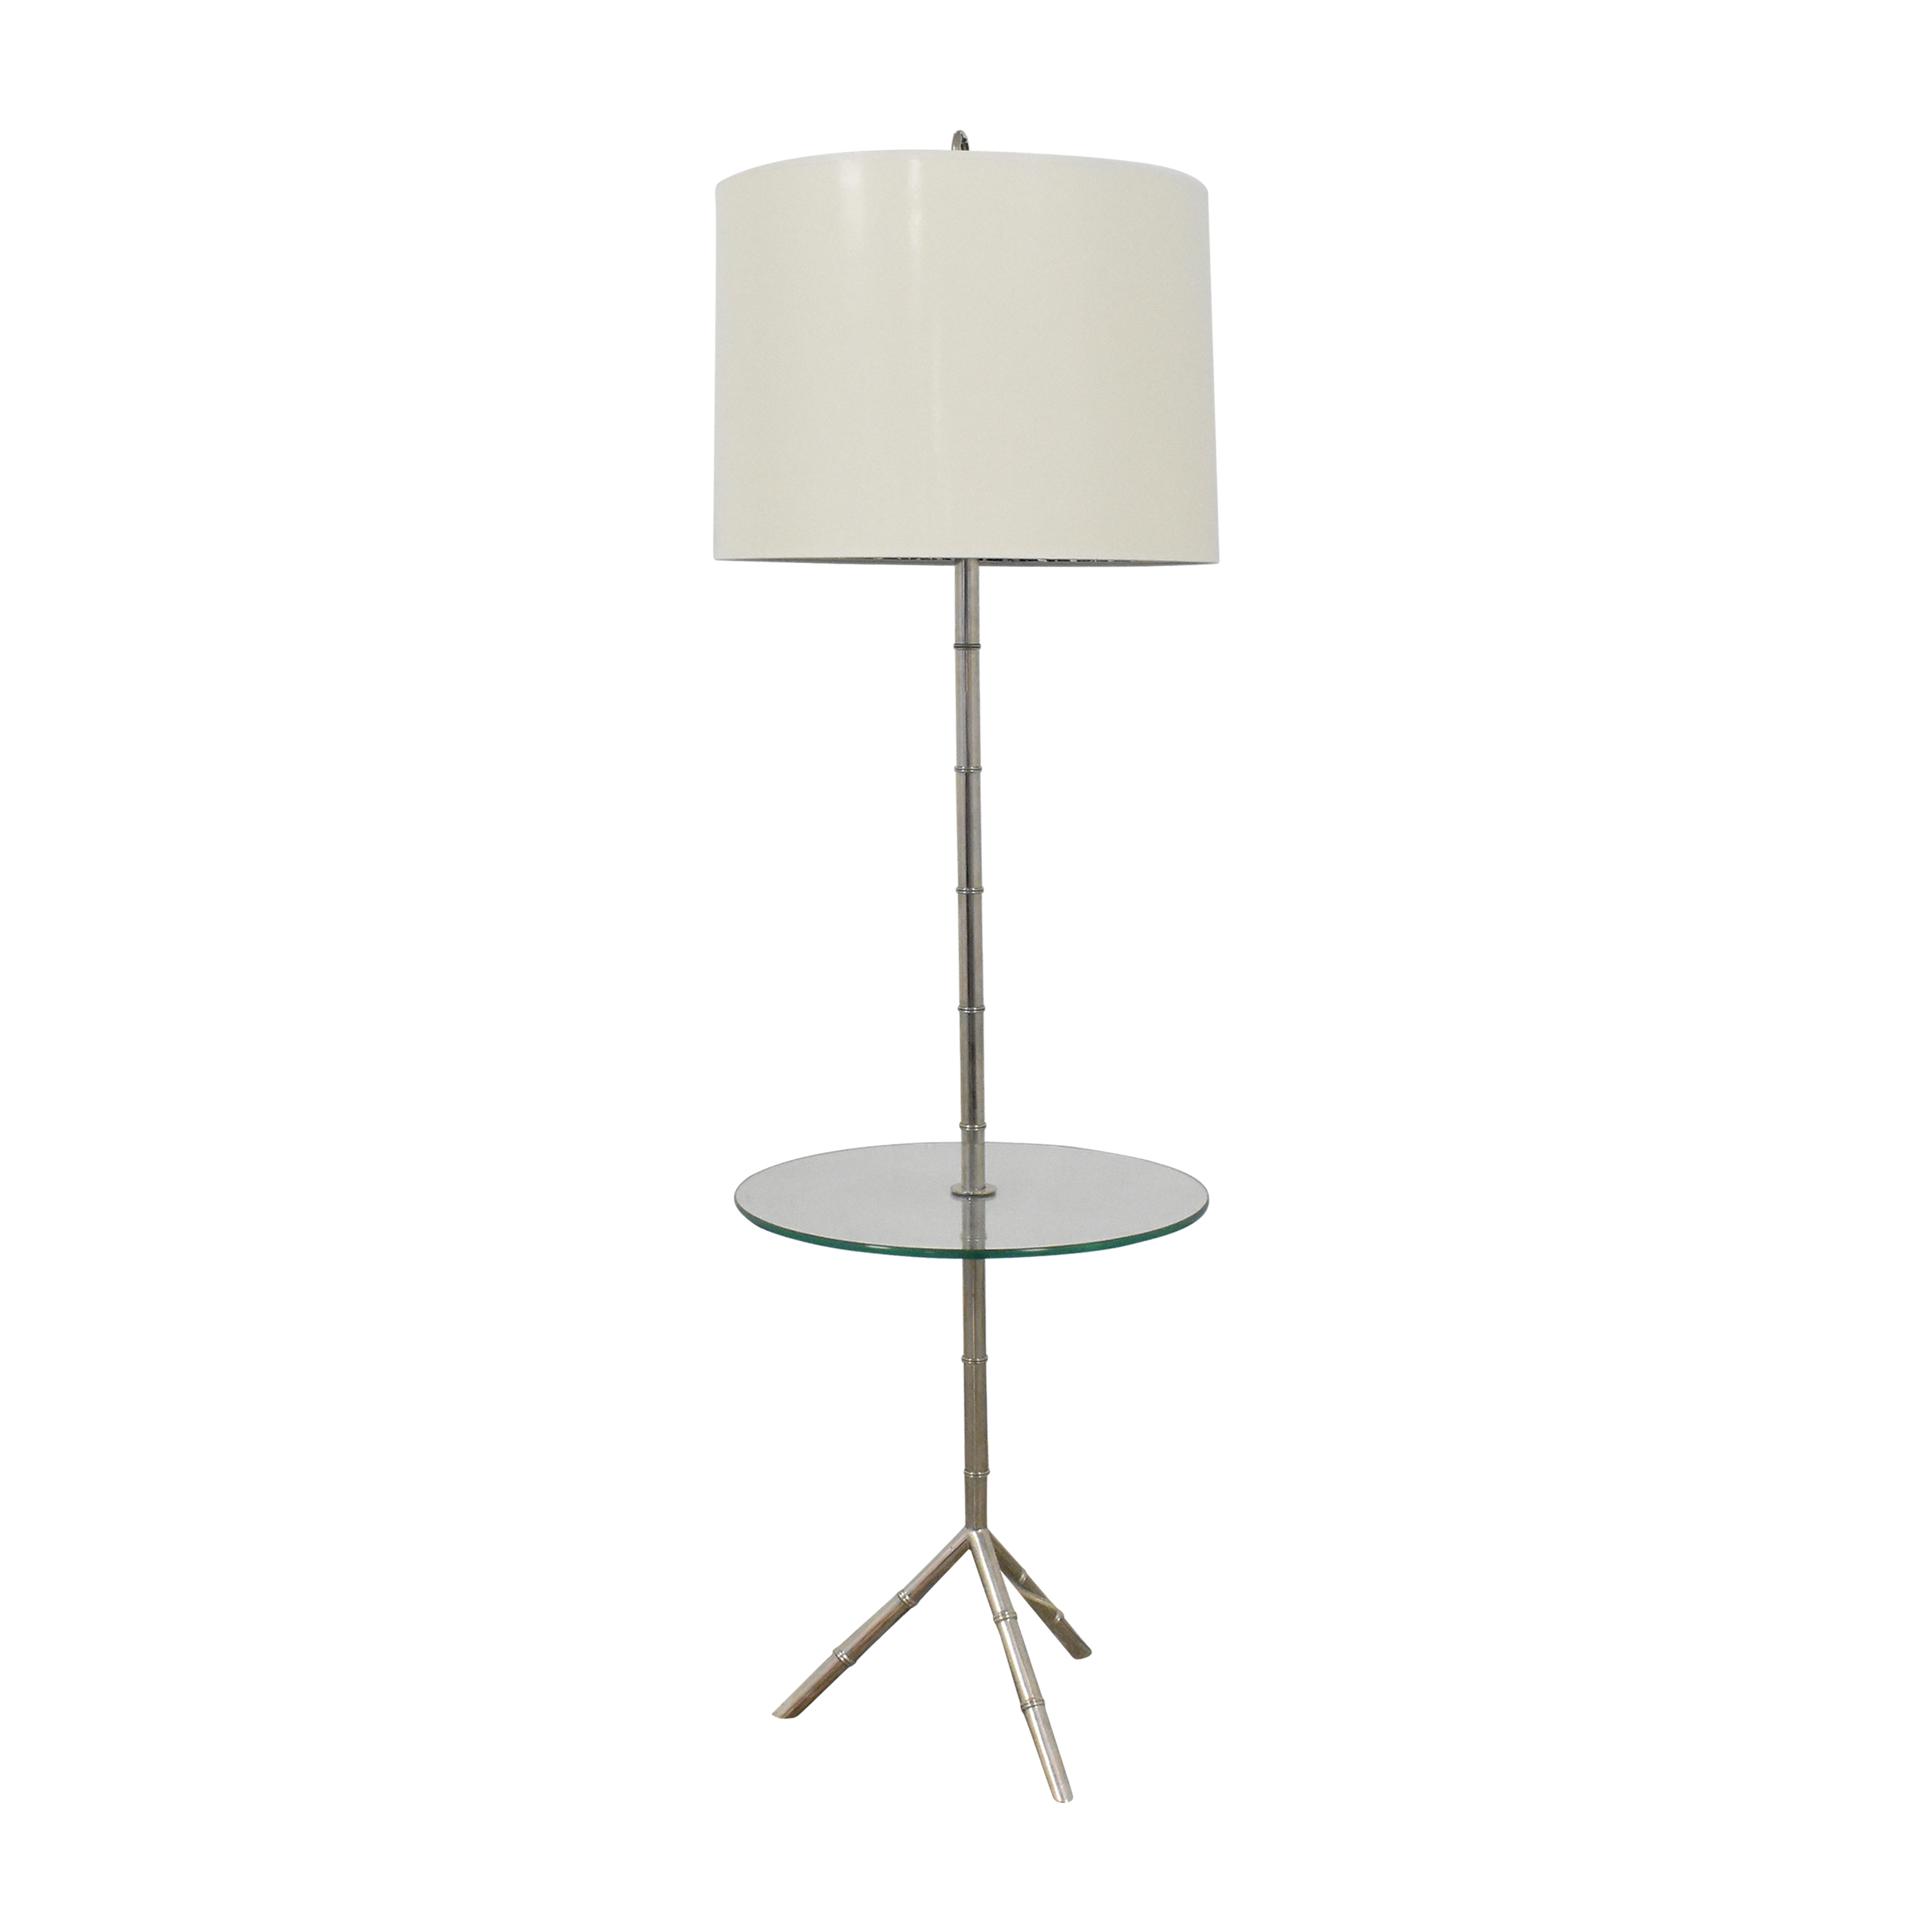 End Table Floor Lamp for sale